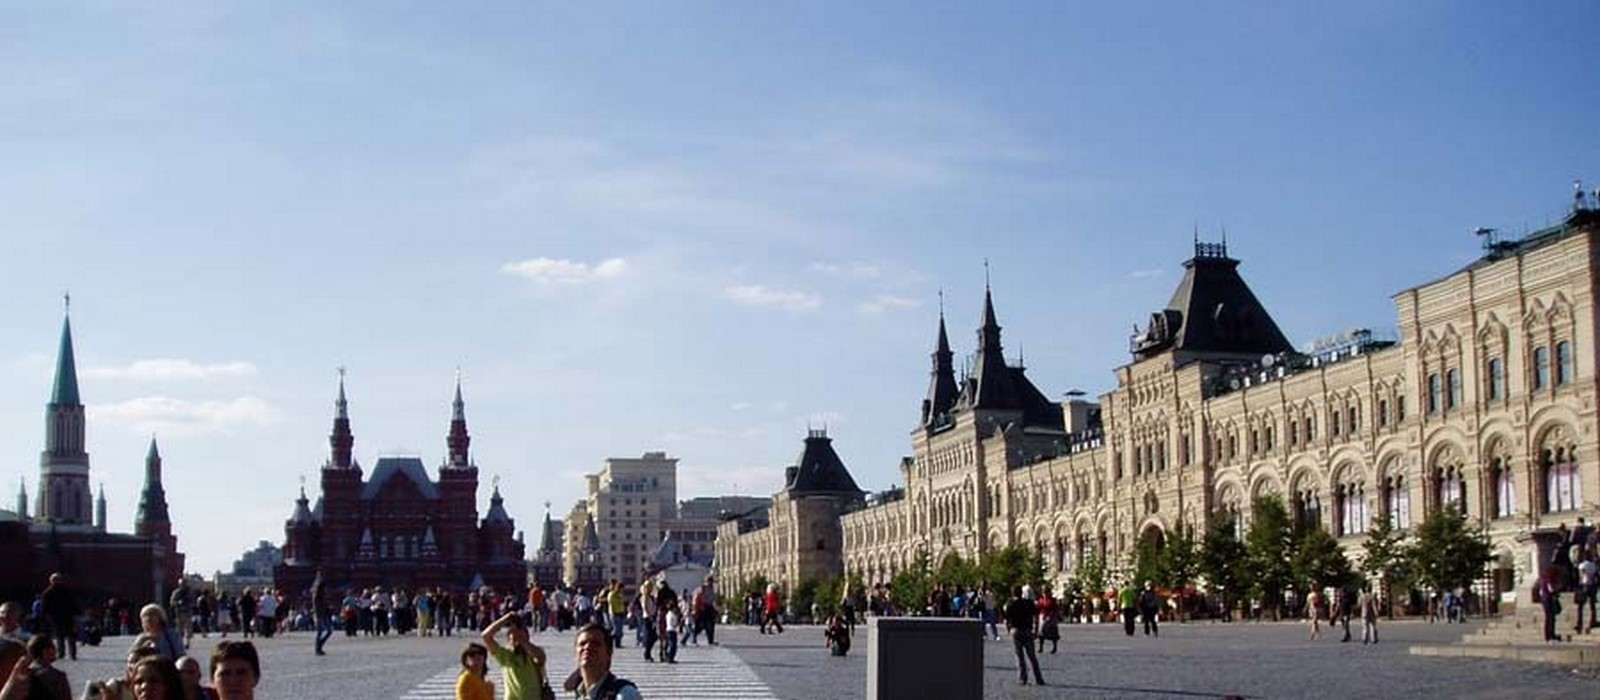 10 Things you did not know about the Stalinist architecture - Sheet9